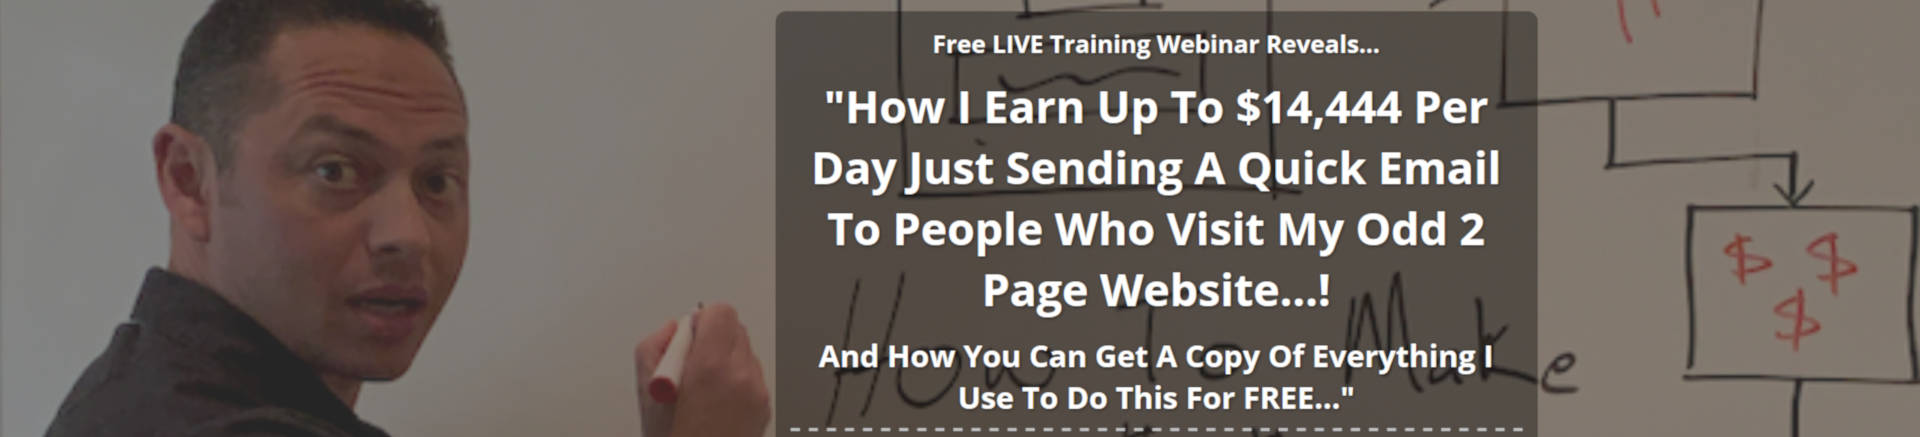 Warranty Terms Training Program 1k A Day Fast Track